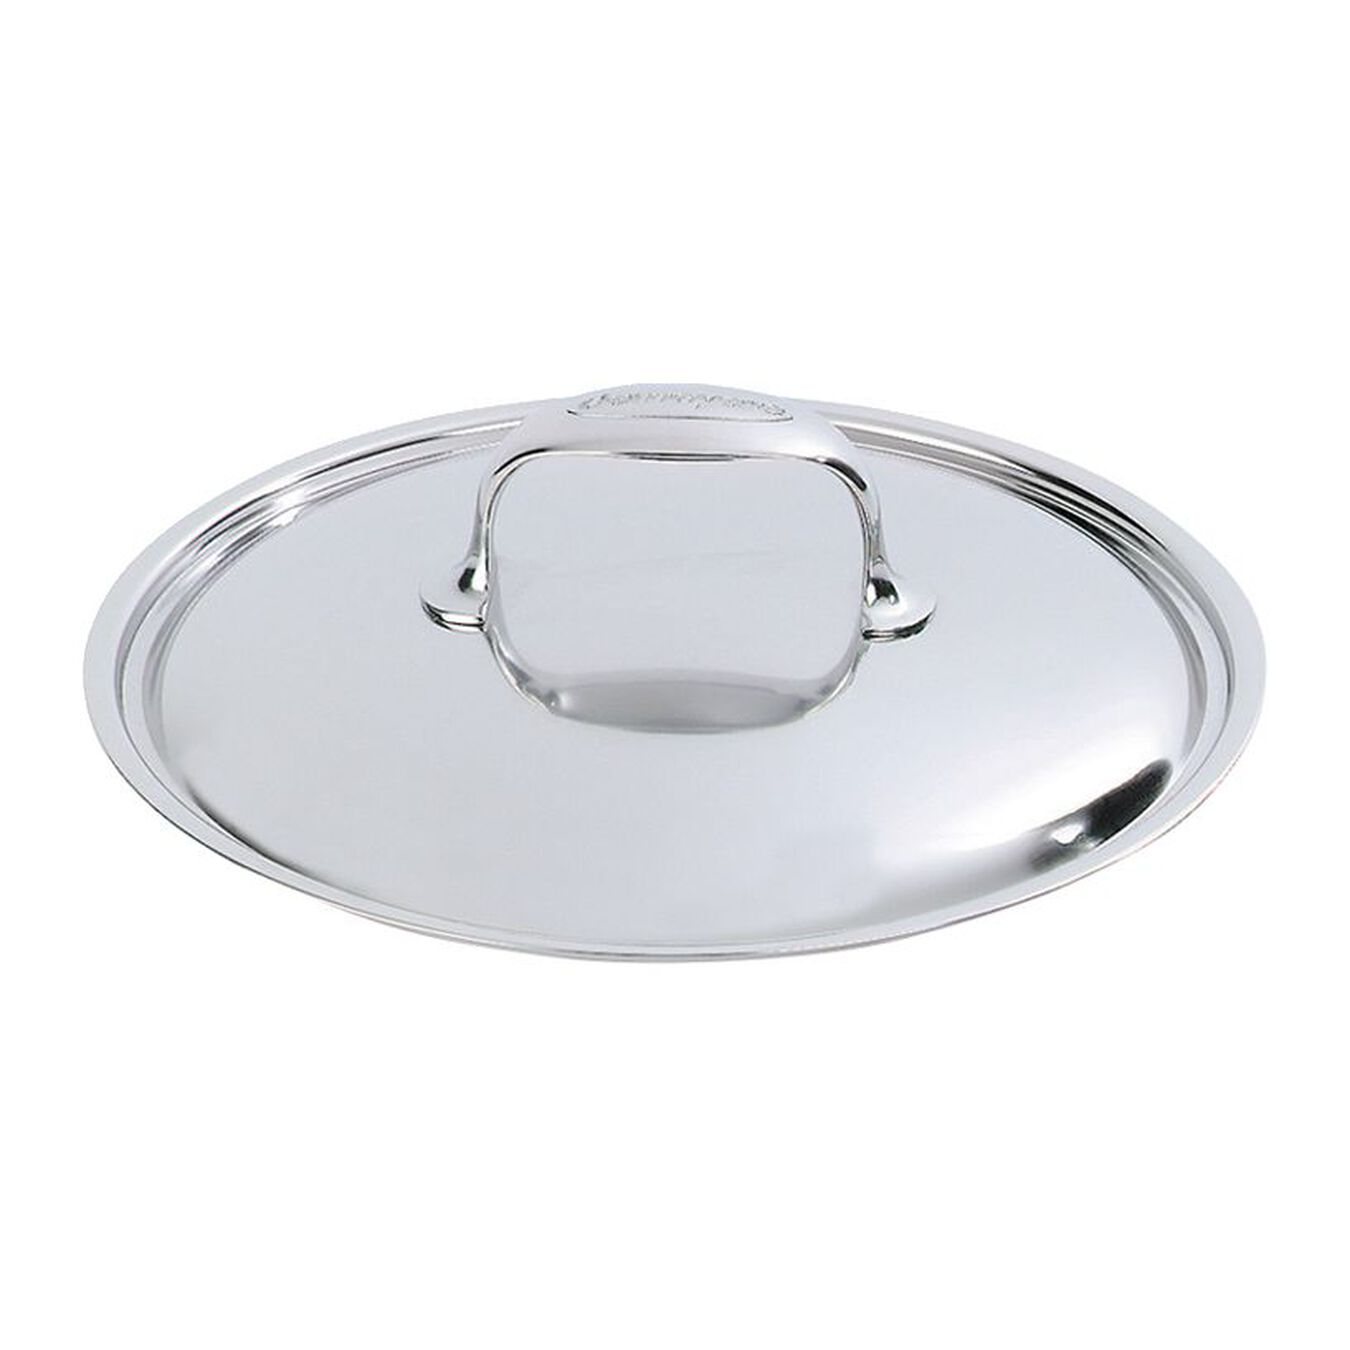 Couvercle 14 cm Inox 18/10,,large 1